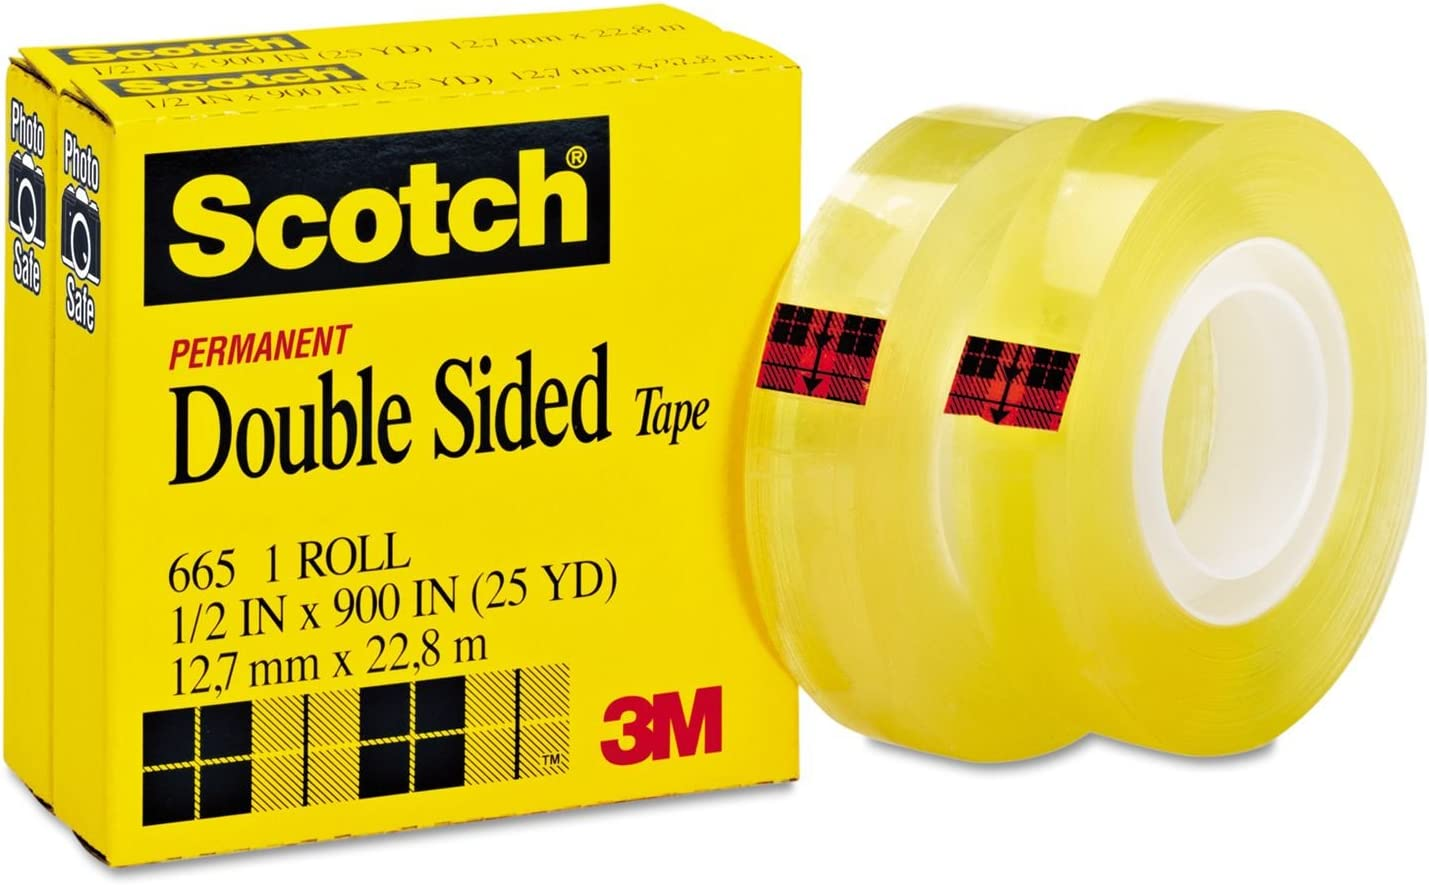 Scotch 665 Double-Sided Office Tape, 1/2 Inch x 900 Inches, 1-Inch Core, Clear, 8 Rolls